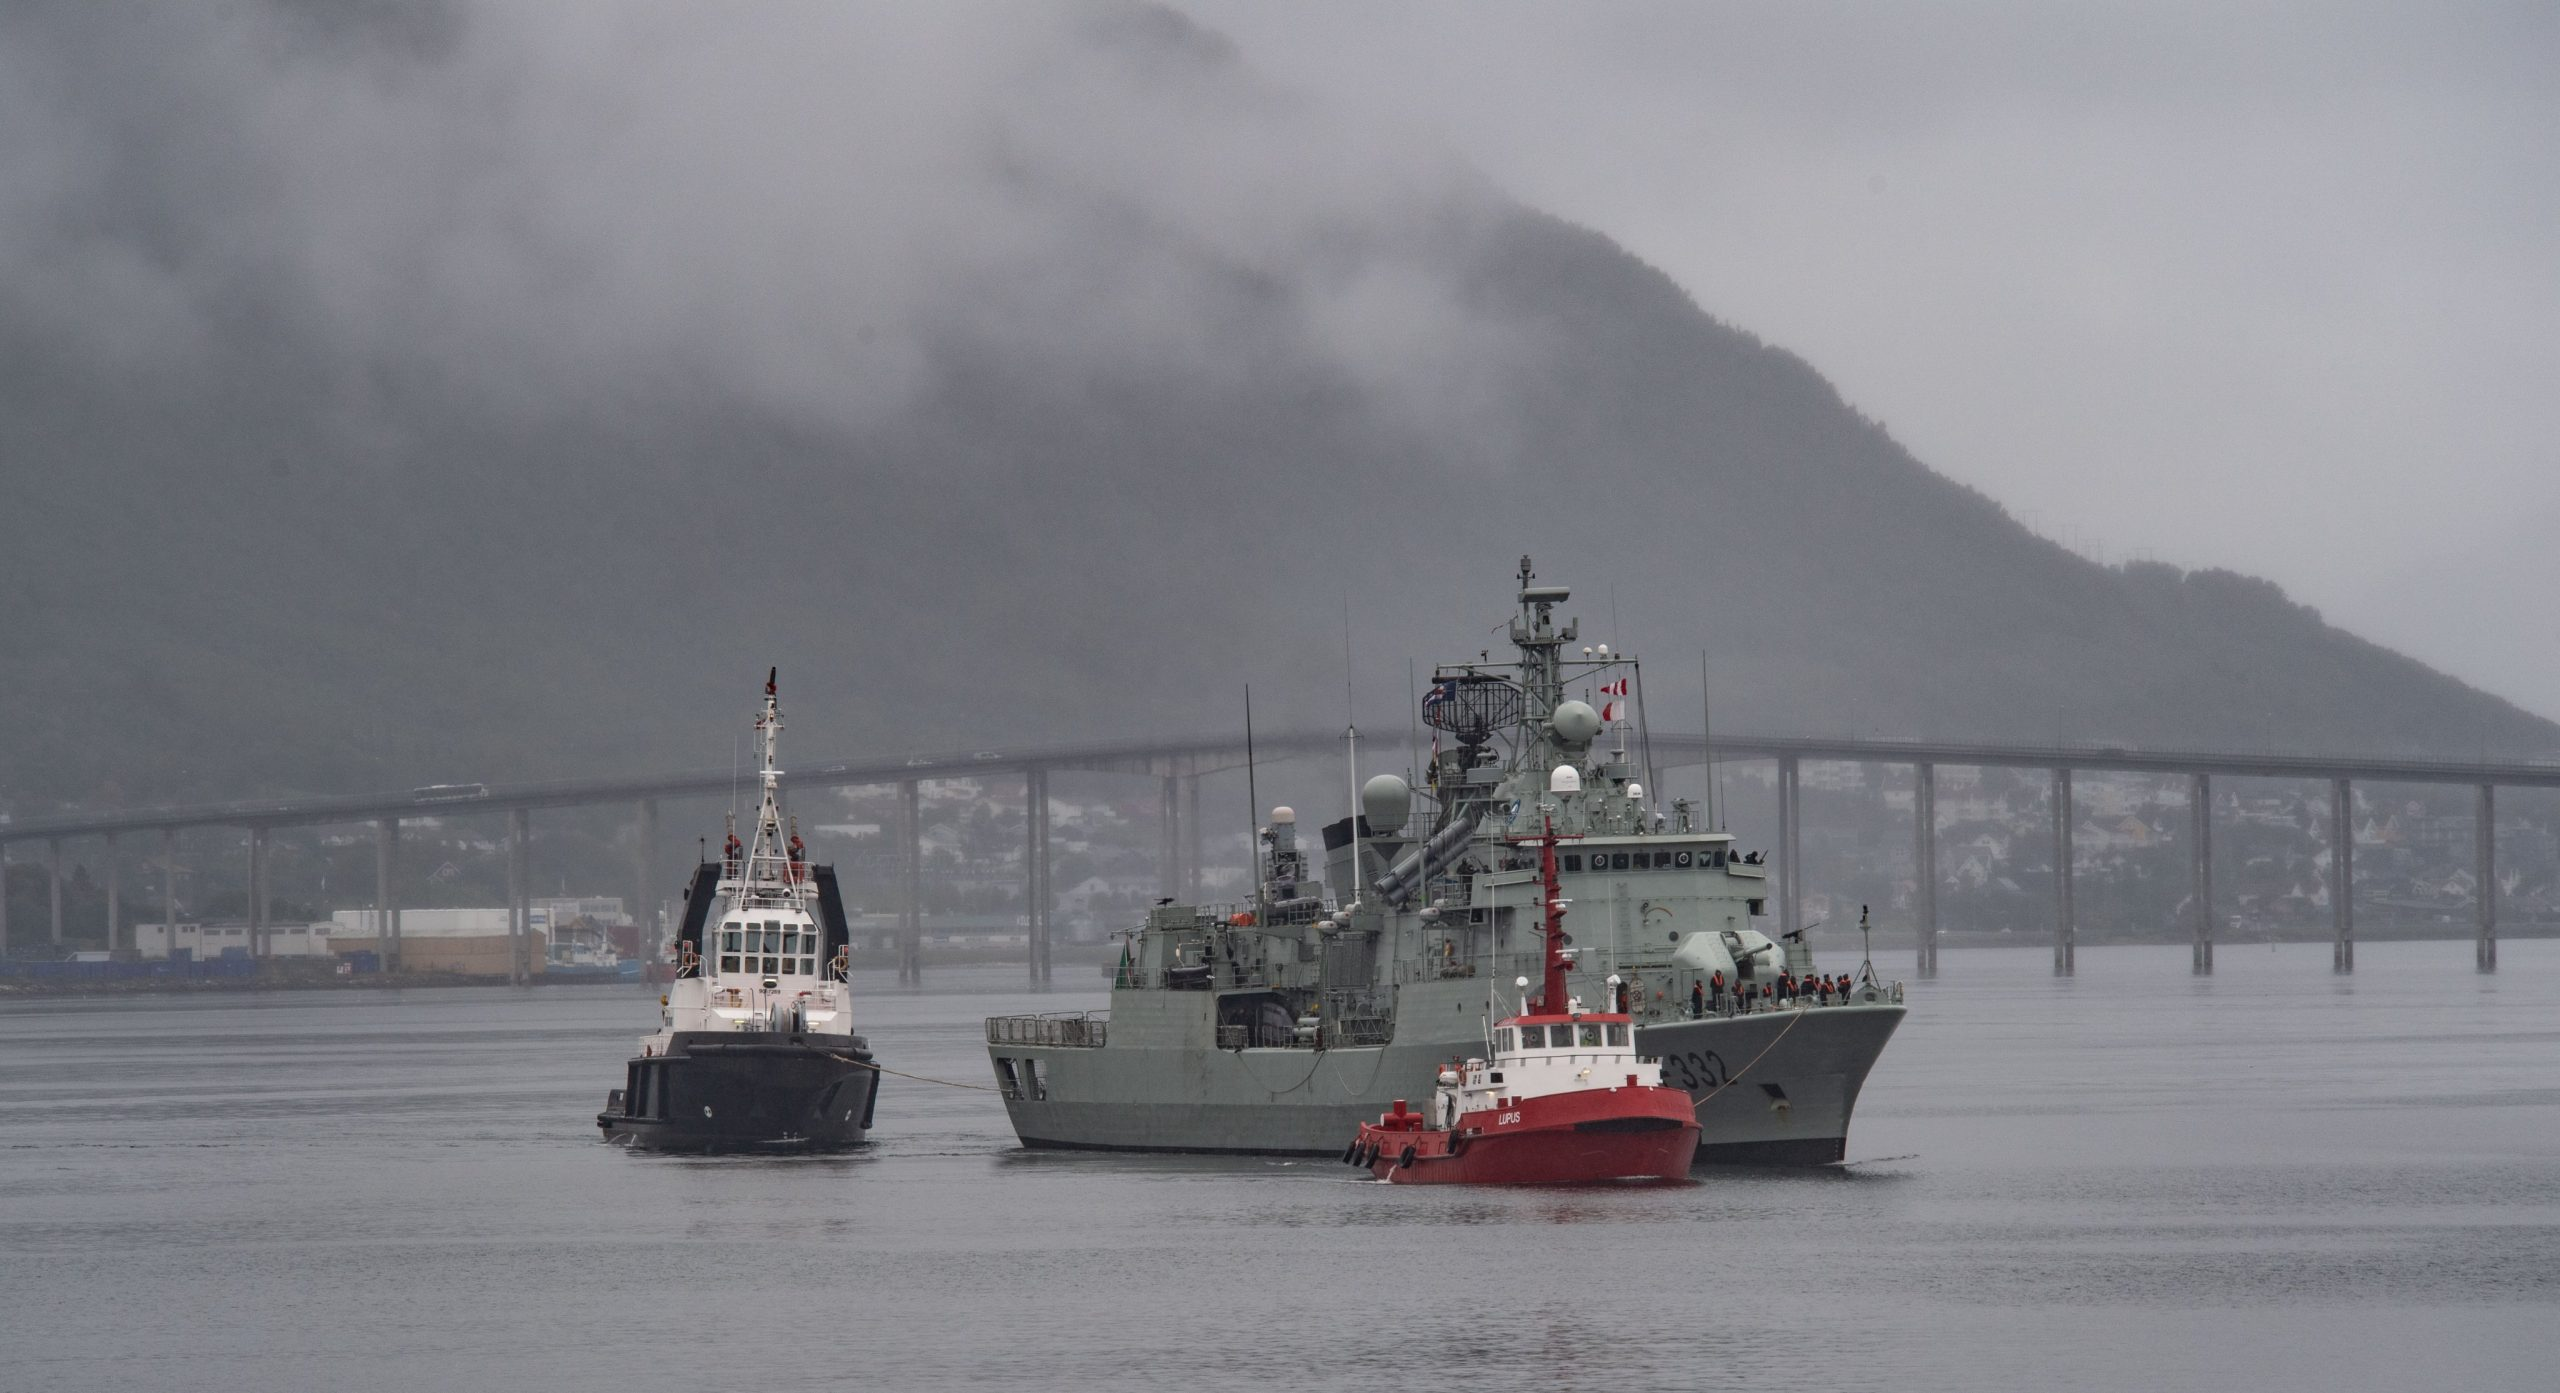 HMCS Fredericton arrives in Norway with SNMG1